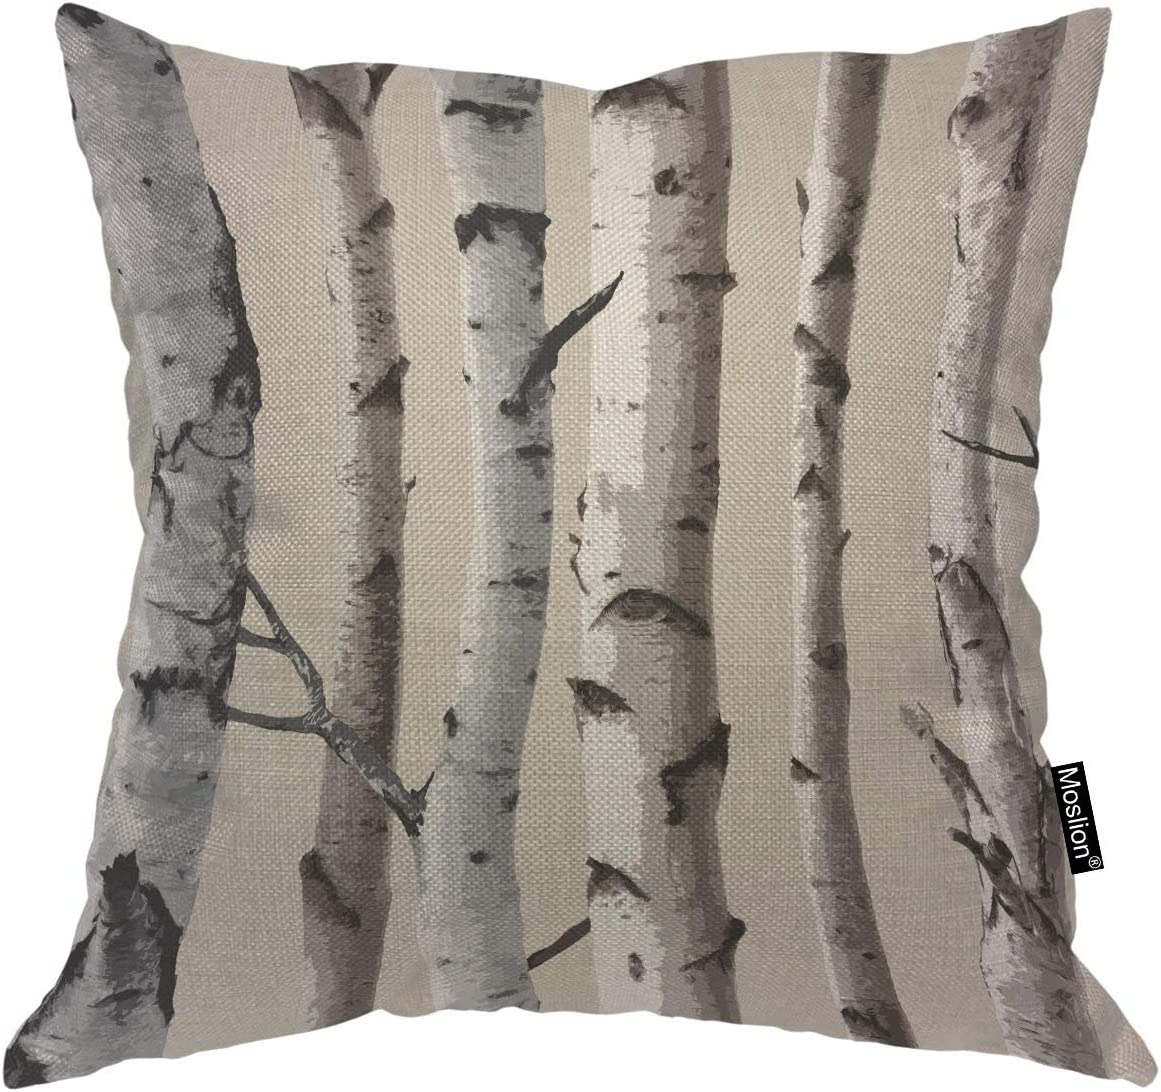 Moslion Throw Pillow Cover Birch 18x18 Inch Tree Trunk Nature Forest Square Pillow Case Cushion Cover for Home Car Decorative Cotton Linen